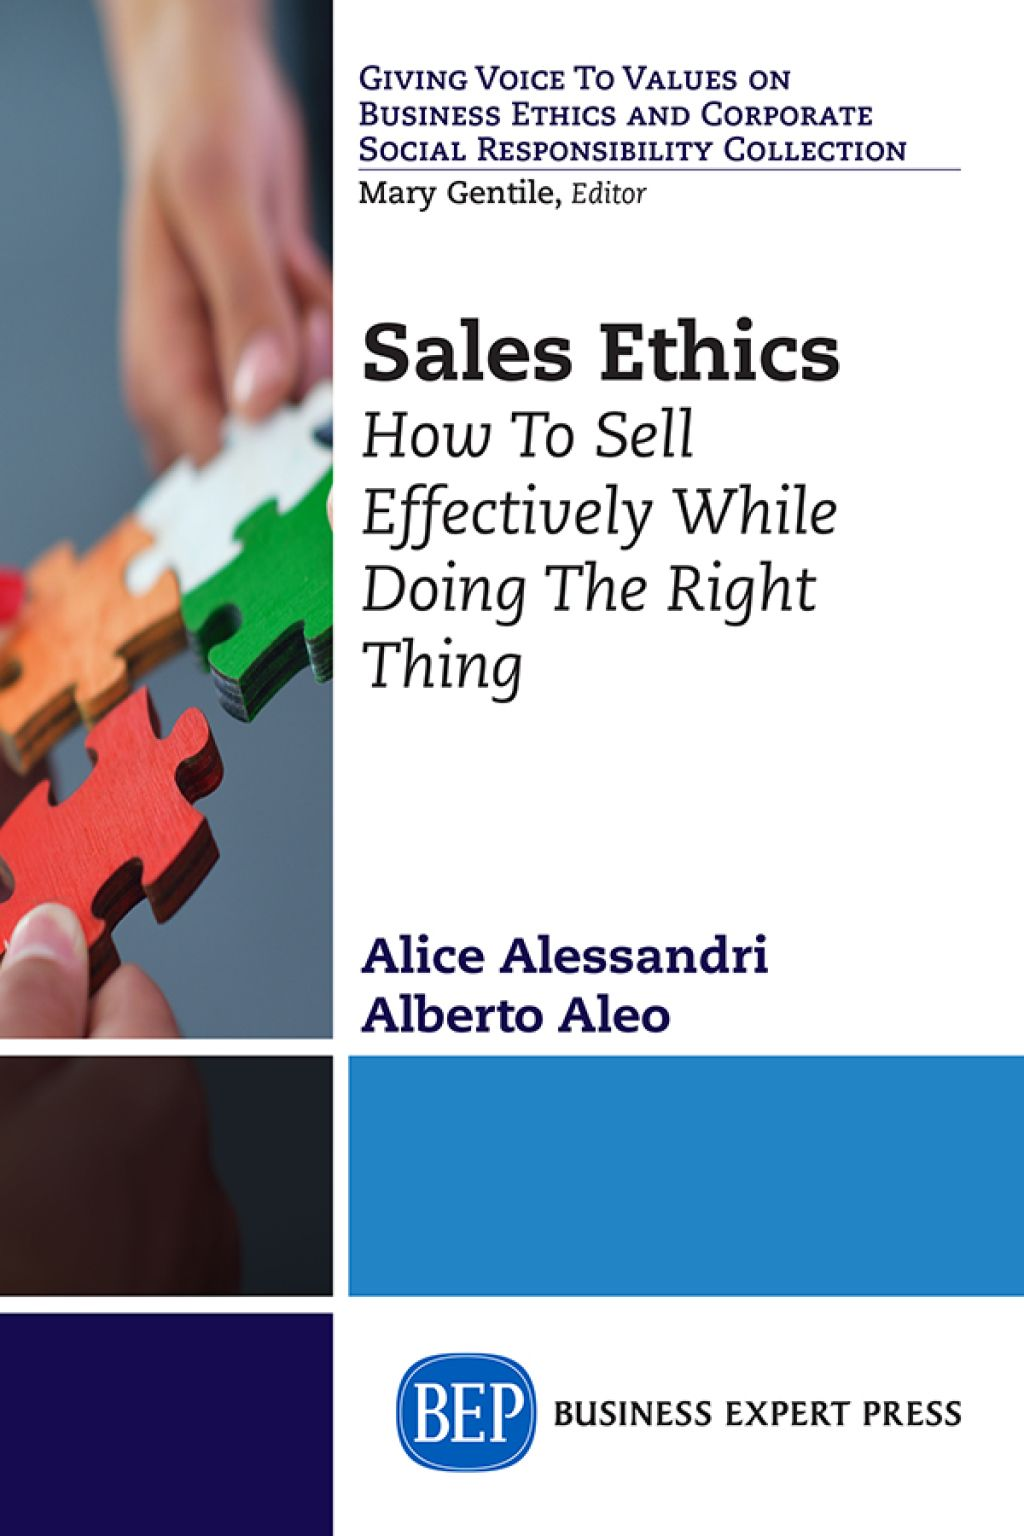 Sales Ethics (eBook) in 2020 Business ethics, Corporate